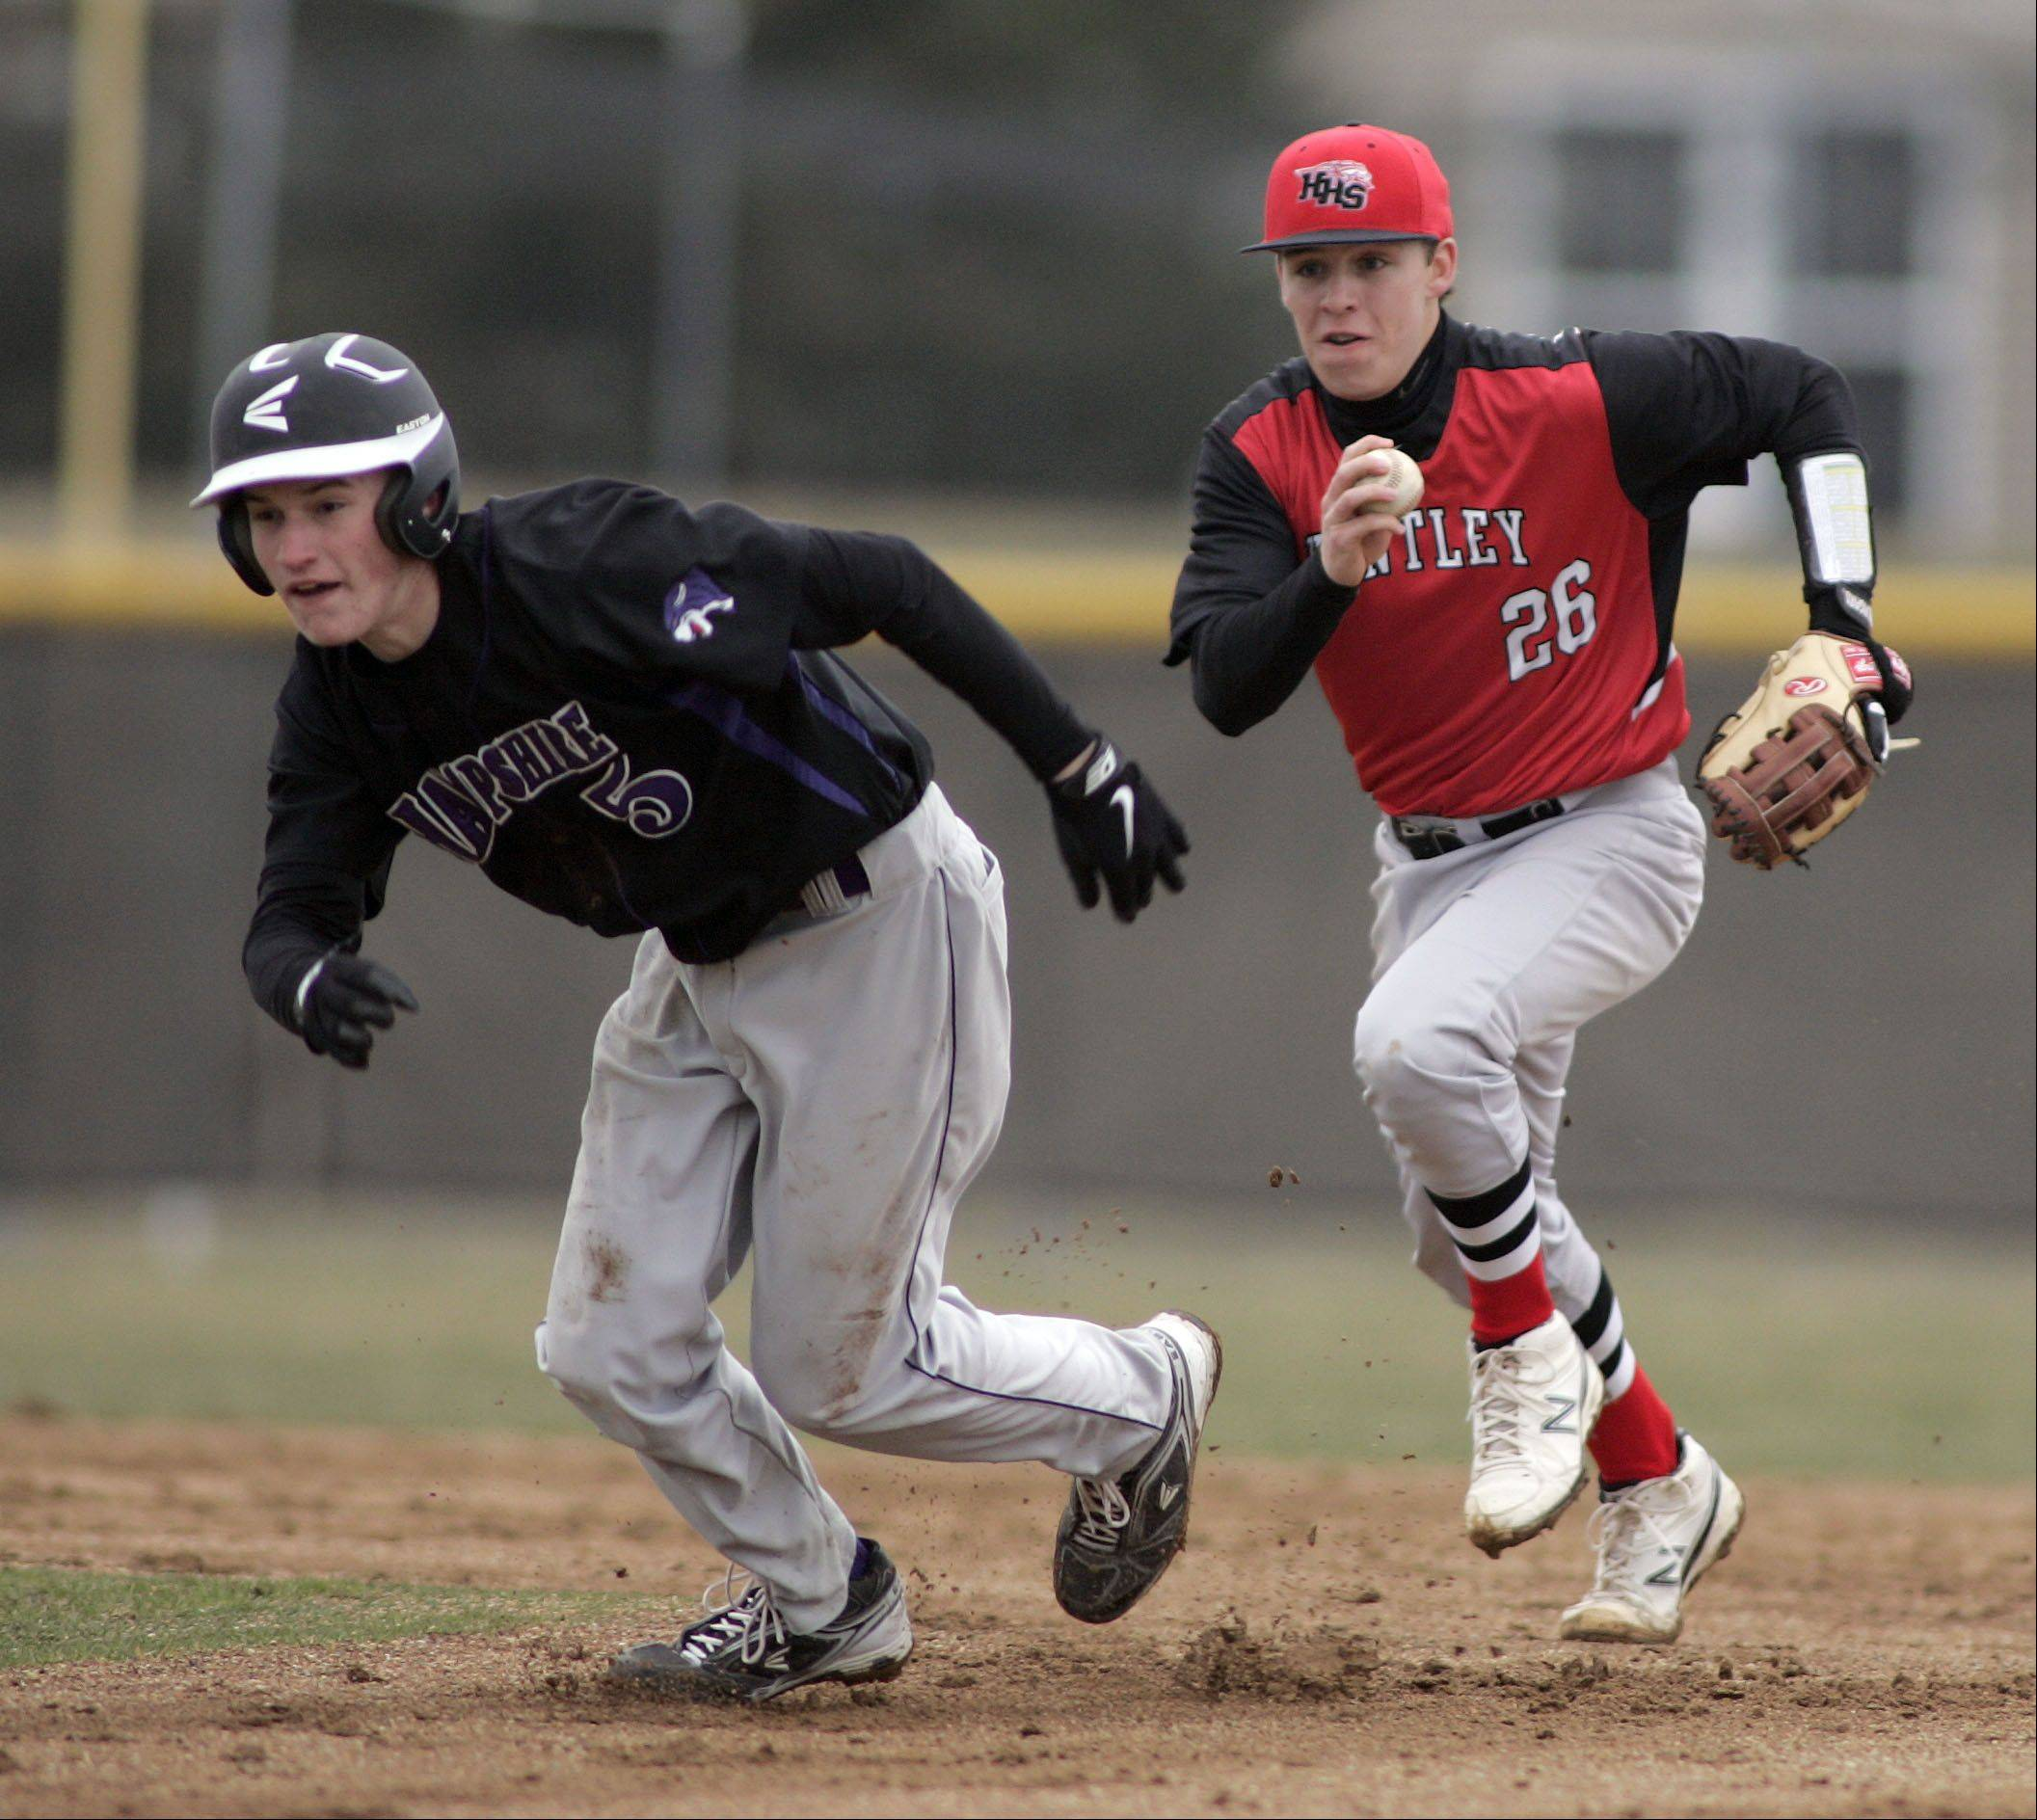 Huntley's Matt Sullivan rushes to put the tag on Hampshire's Brandon Bowen during Hampshire at Huntley baseball Tuesday. Bowen was called out on the stolen base attempt.